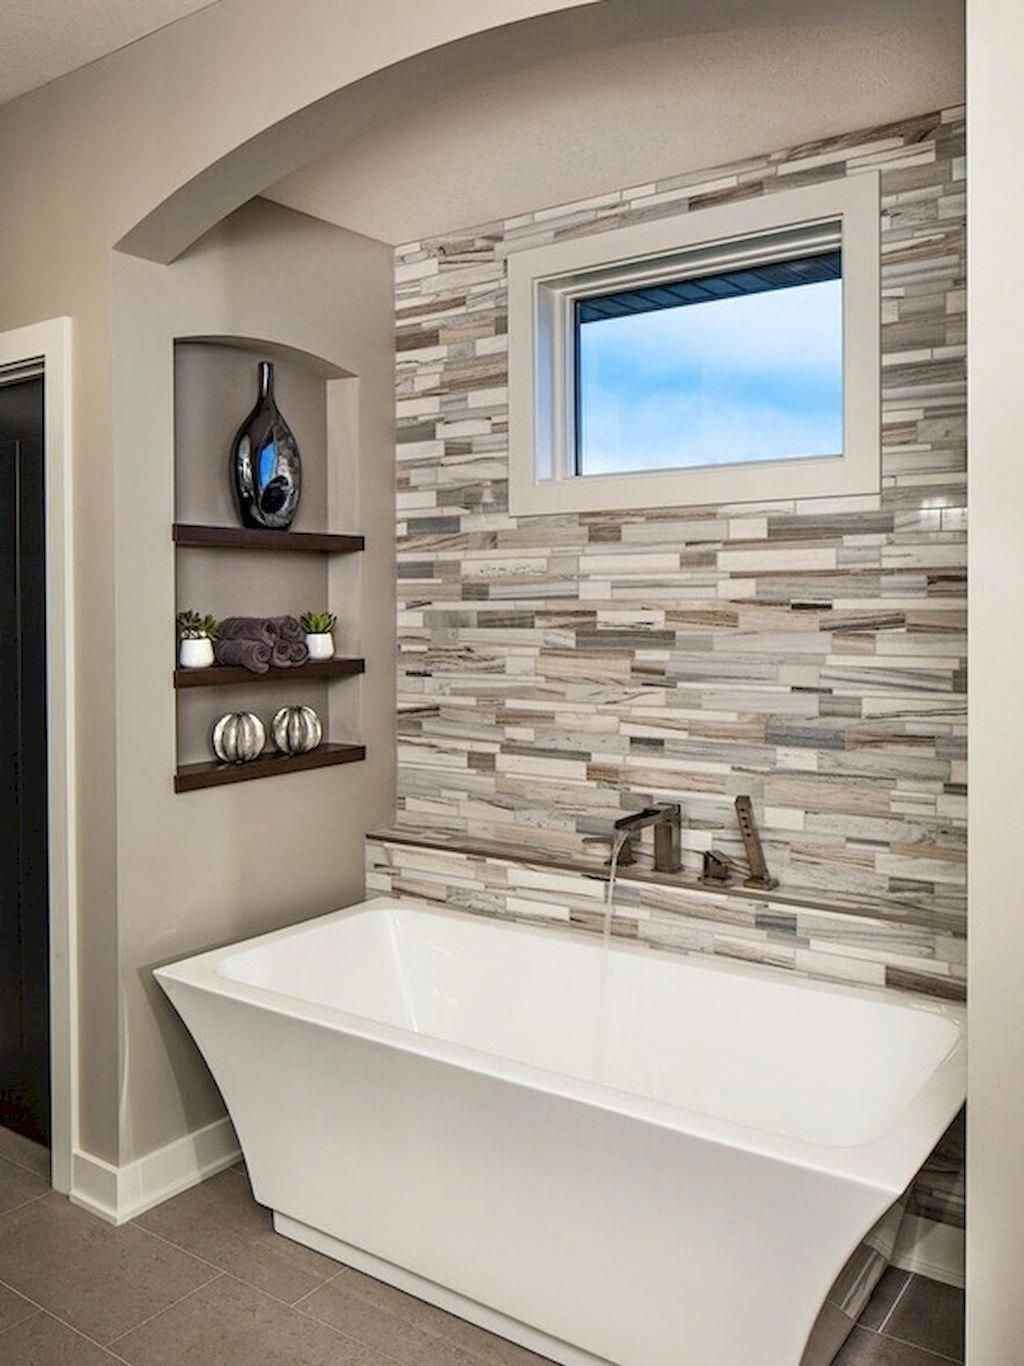 How Much Does It Cost To Remodel A Bathroom Bathroom Remodel Cost Diy Bathroom Decor Renovation